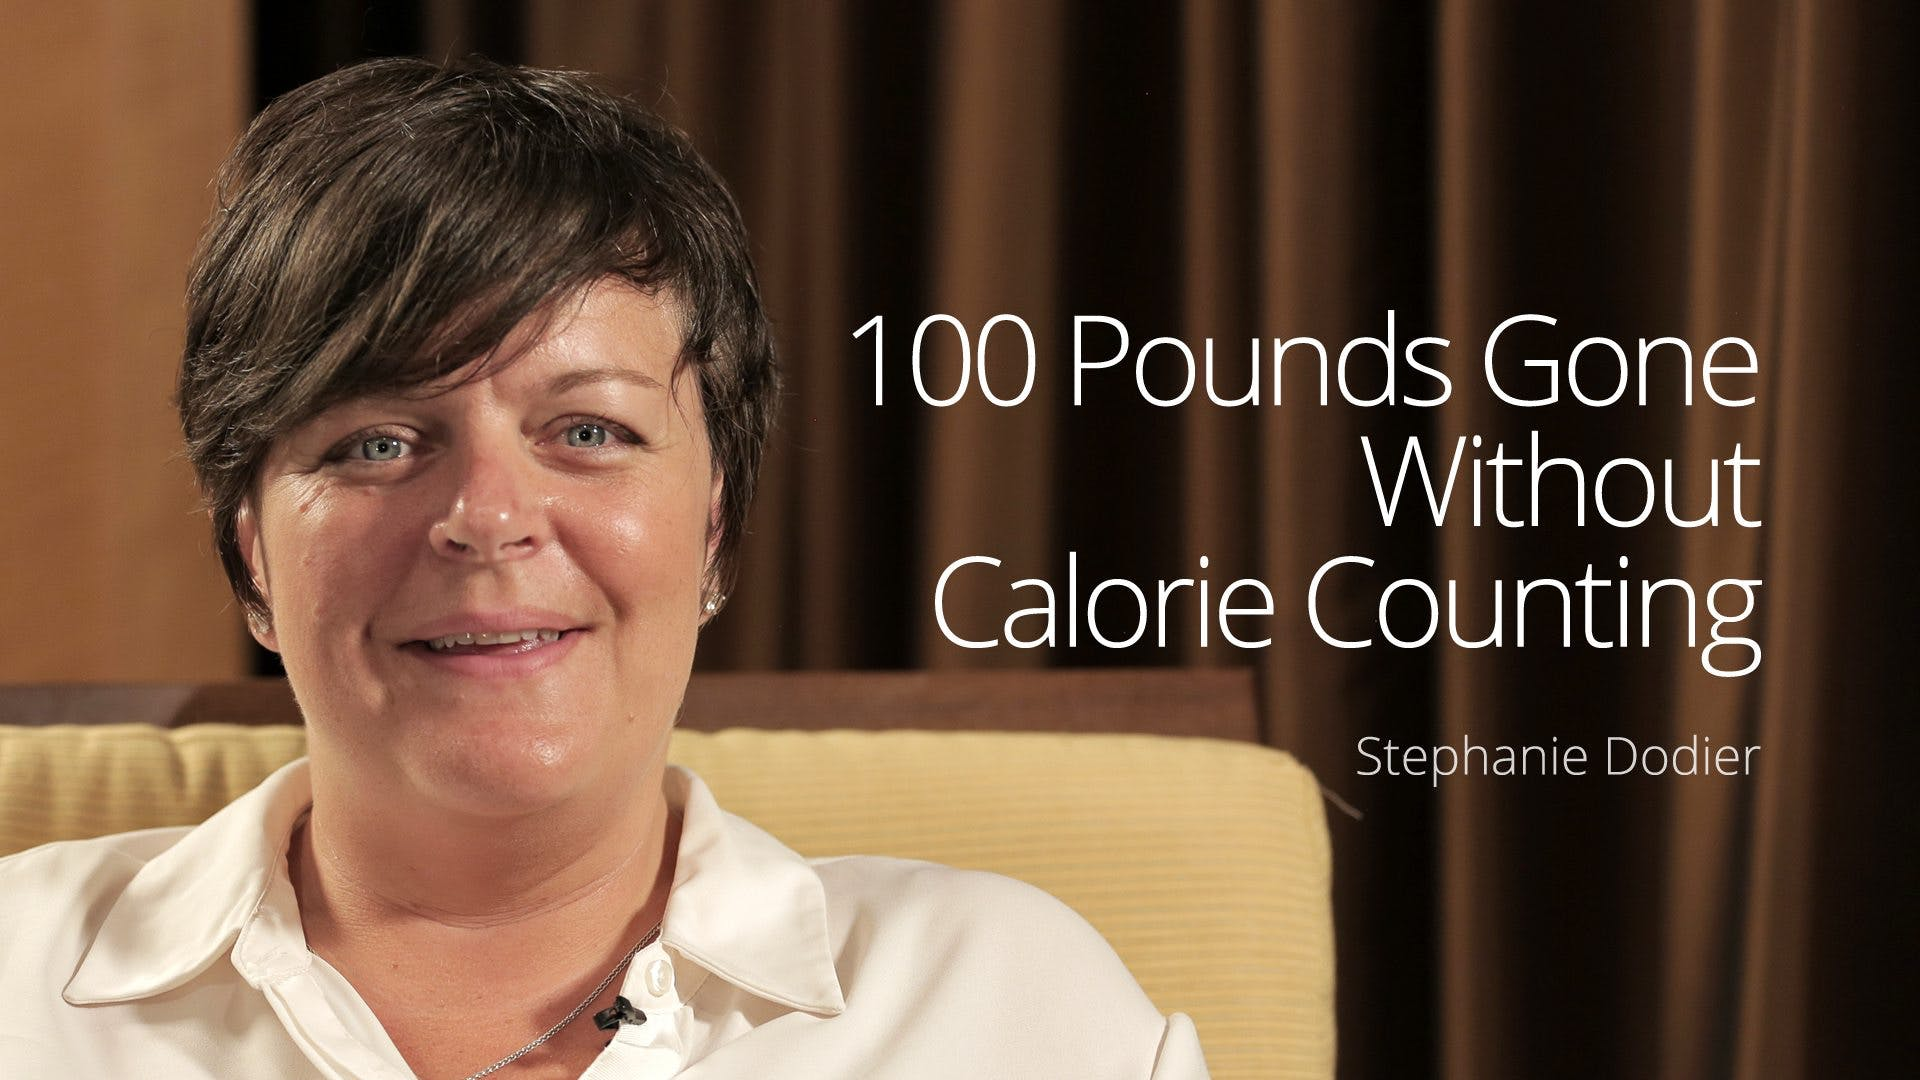 100 Pounds Gone Without Calorie Counting